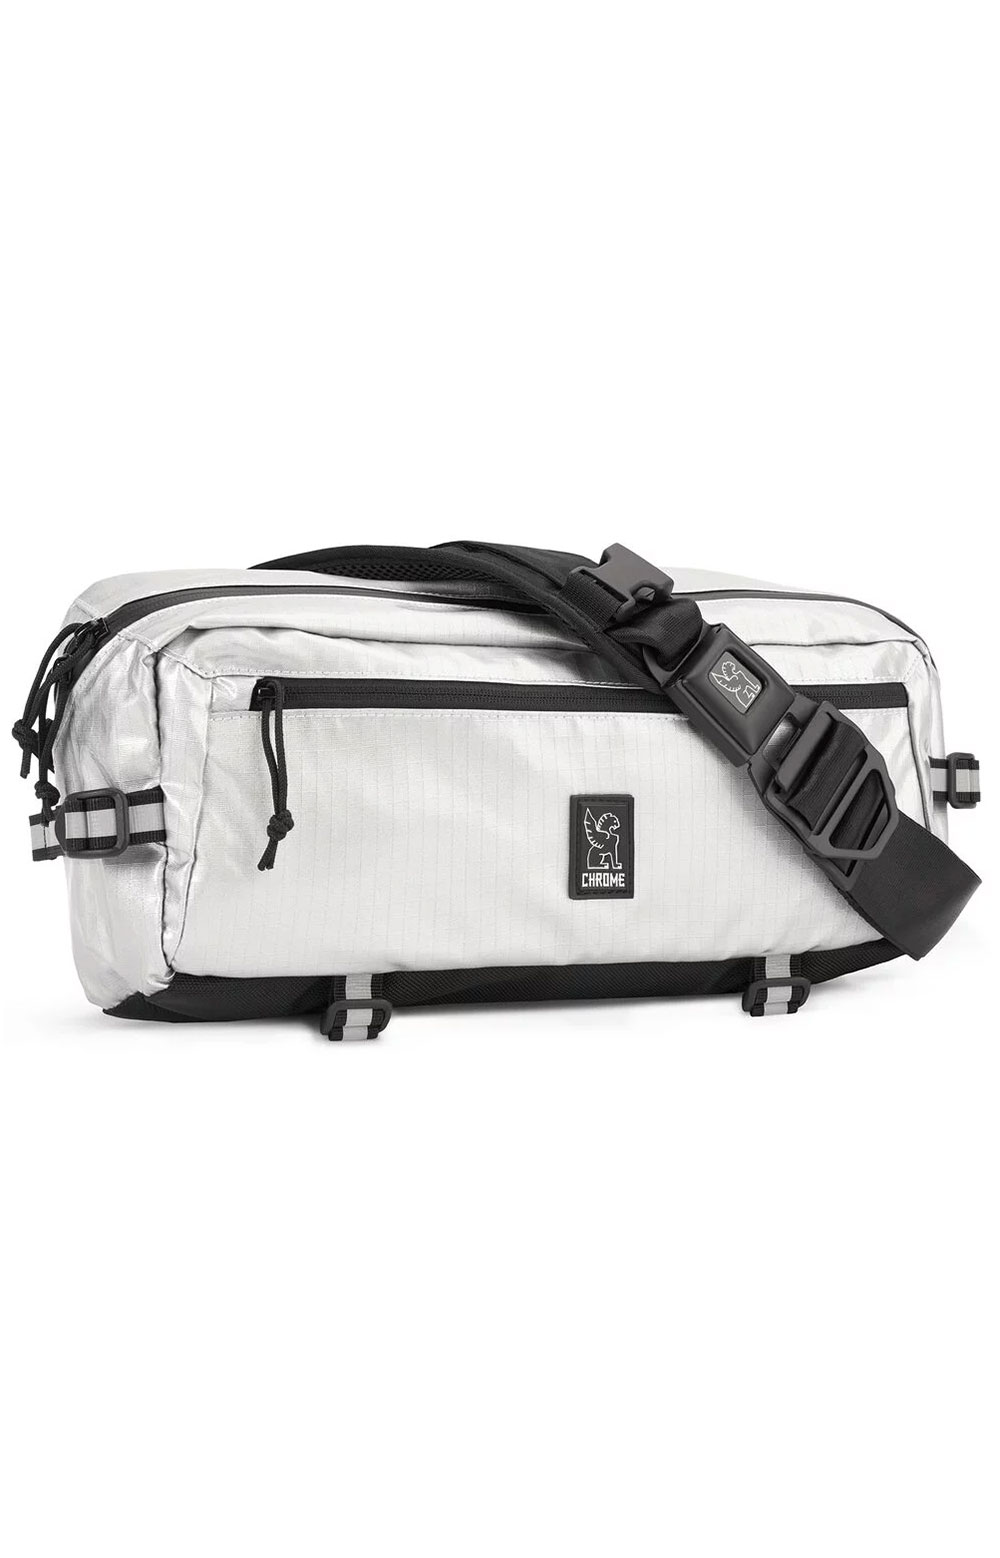 Kadet Nylon Bag - Chrome/Aluminum